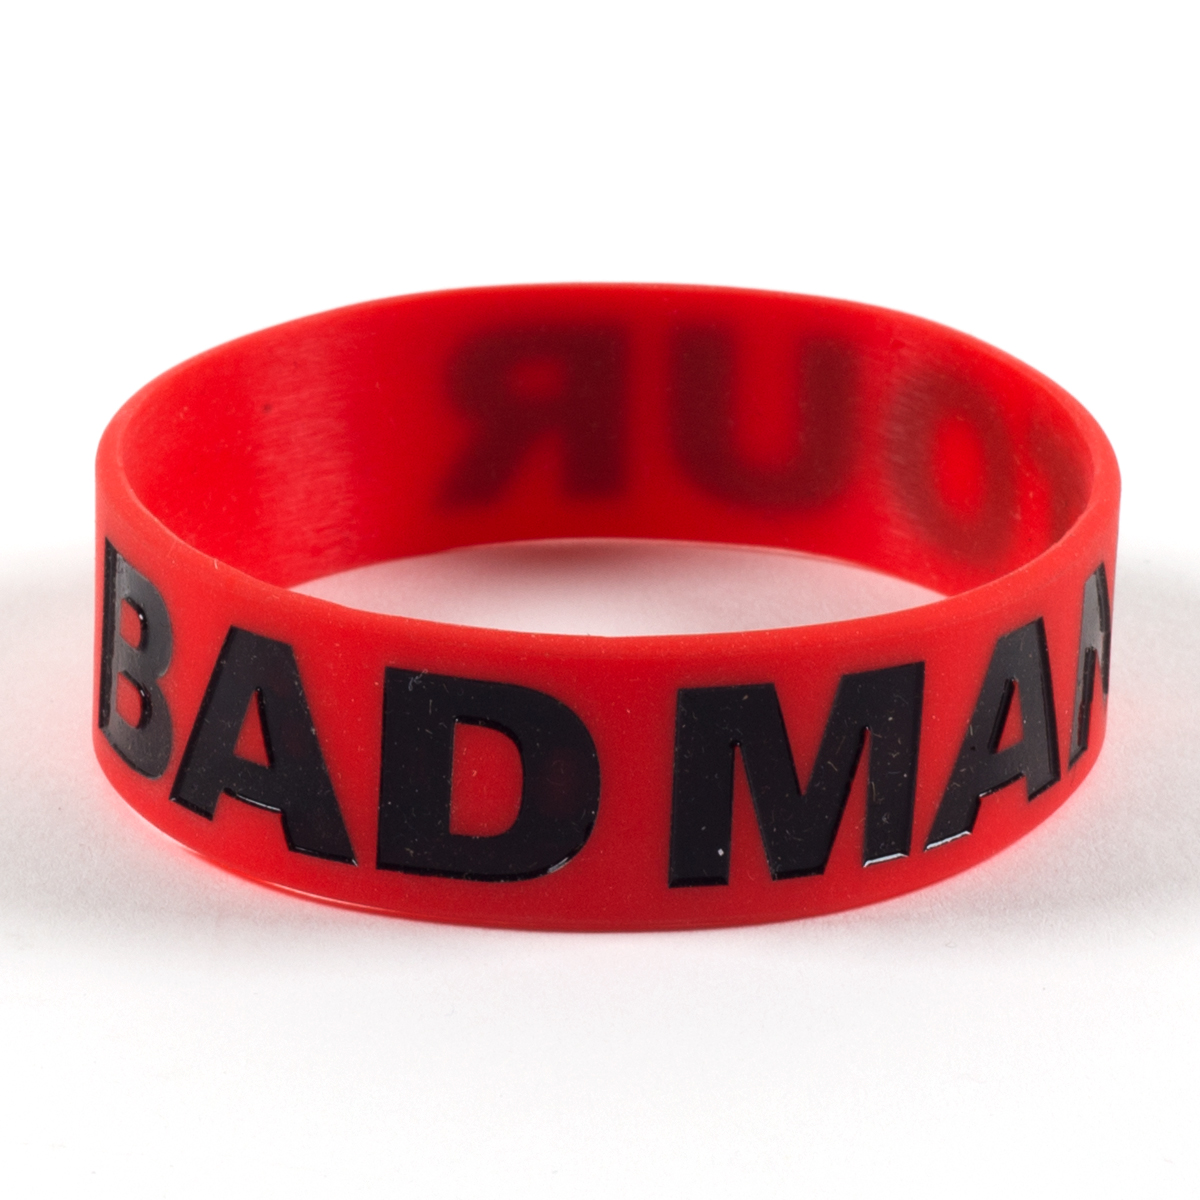 The Bad Man Tour Rubber Bracelet